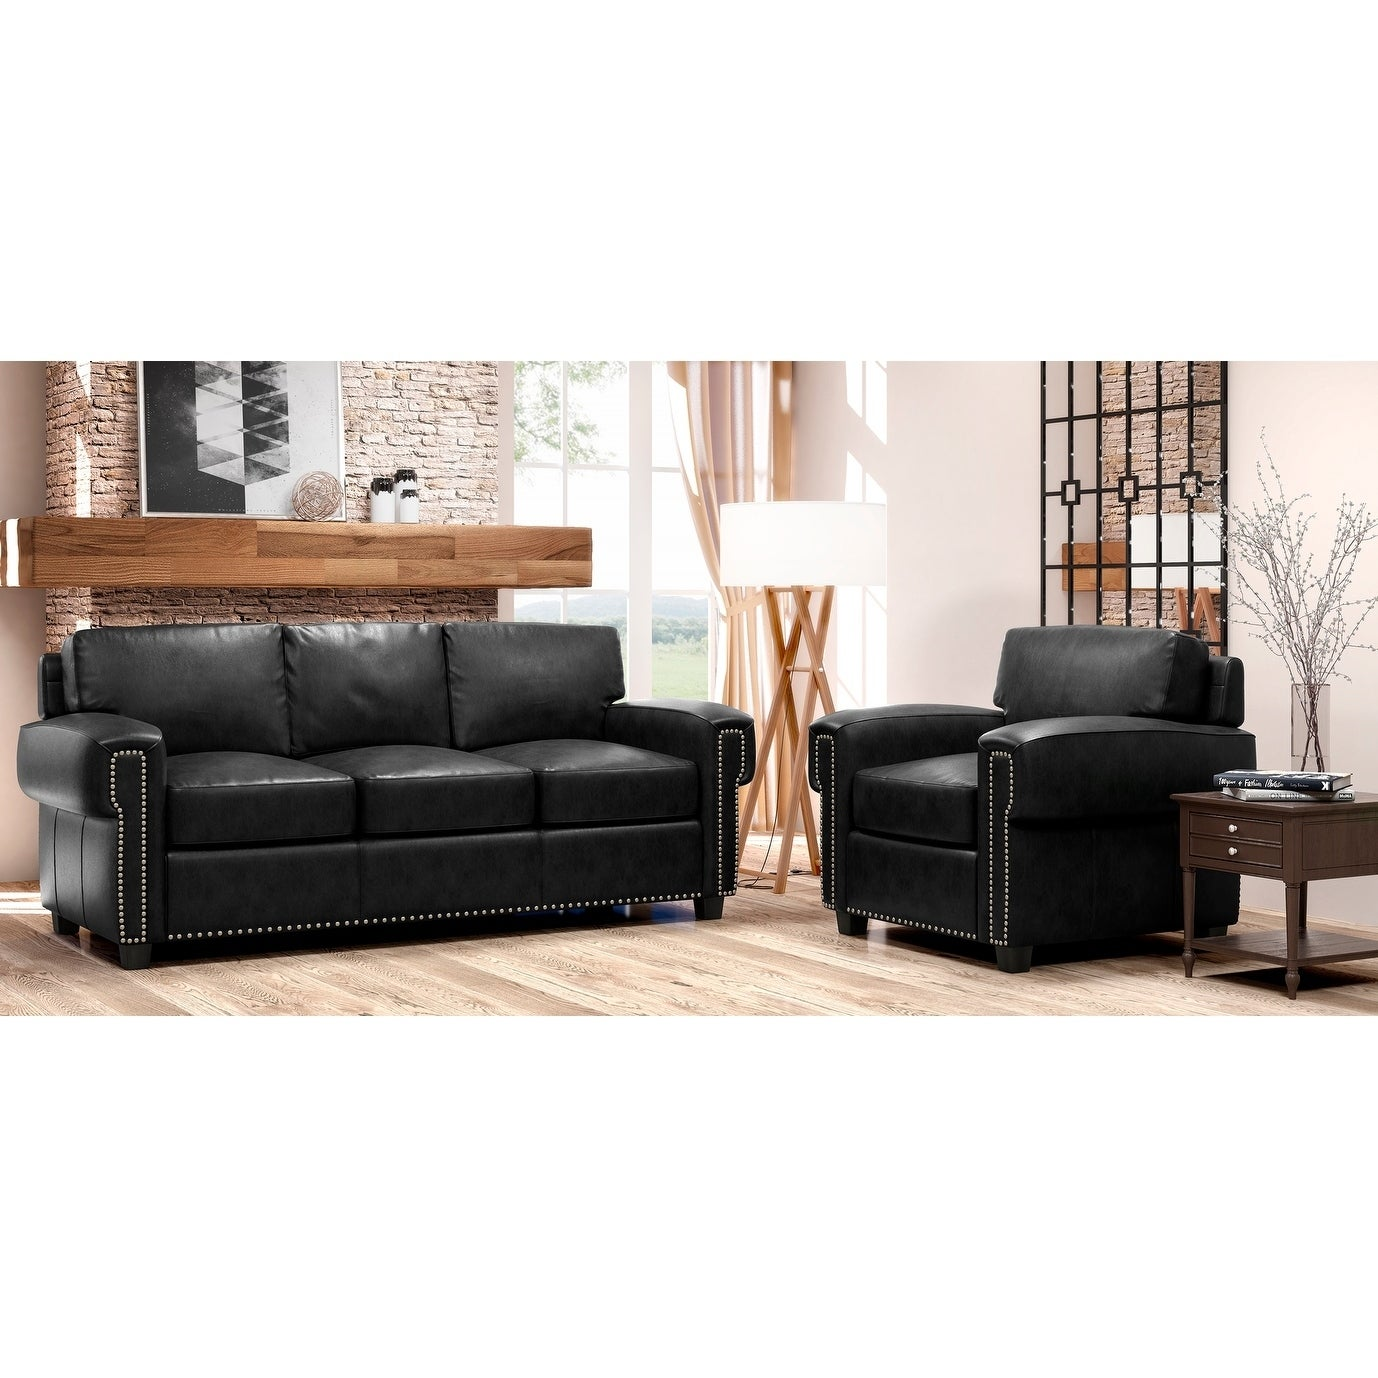 Terrific Made To Order Como 100 Top Grain Leather Sofa And Chair Set Ncnpc Chair Design For Home Ncnpcorg